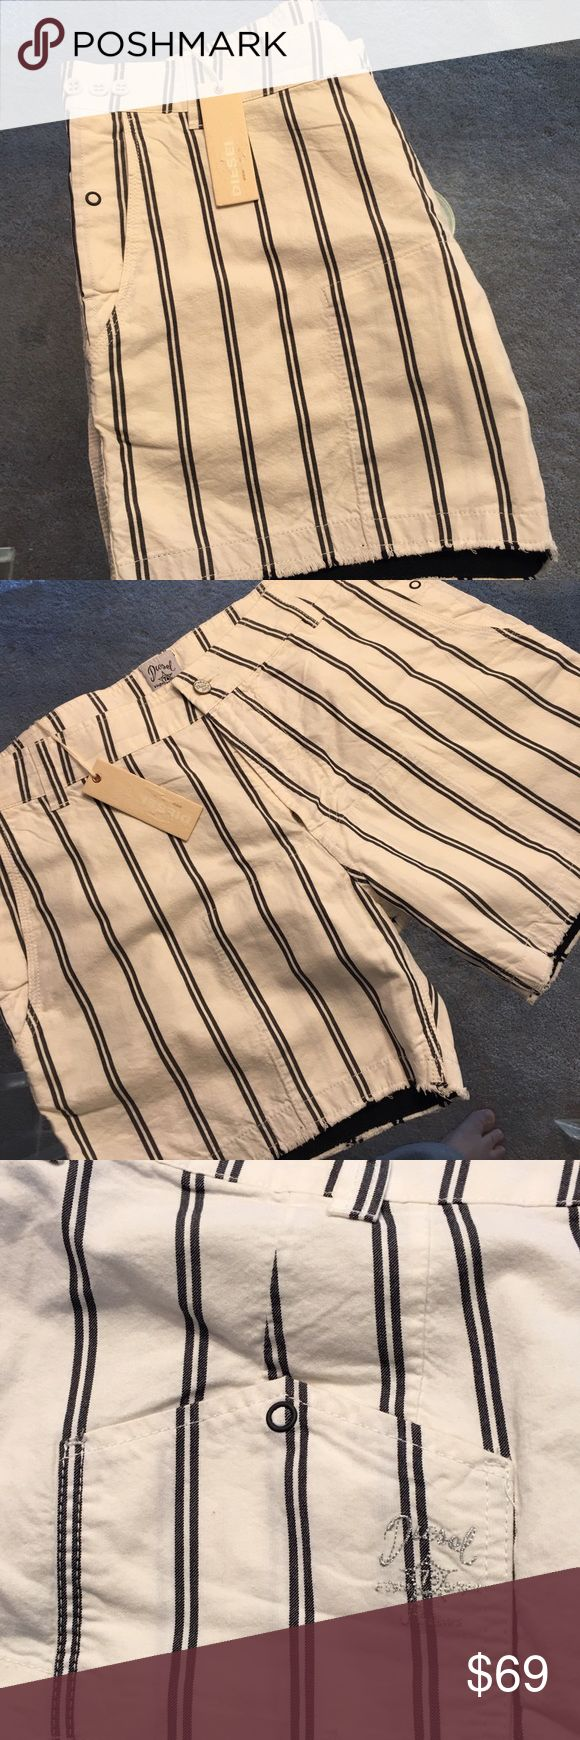 ❤️DIESEL MENS SHORTS 💯AUTHENTIC DIESEL MENS SHORTS 100% AUTHENTIC. VERY STYLISH AND HIGH END LOOK . AMAZING SHORTS IN OFF WHITE AND BLACK. THE SIZE IS 34 Diesel Shorts Flat Front